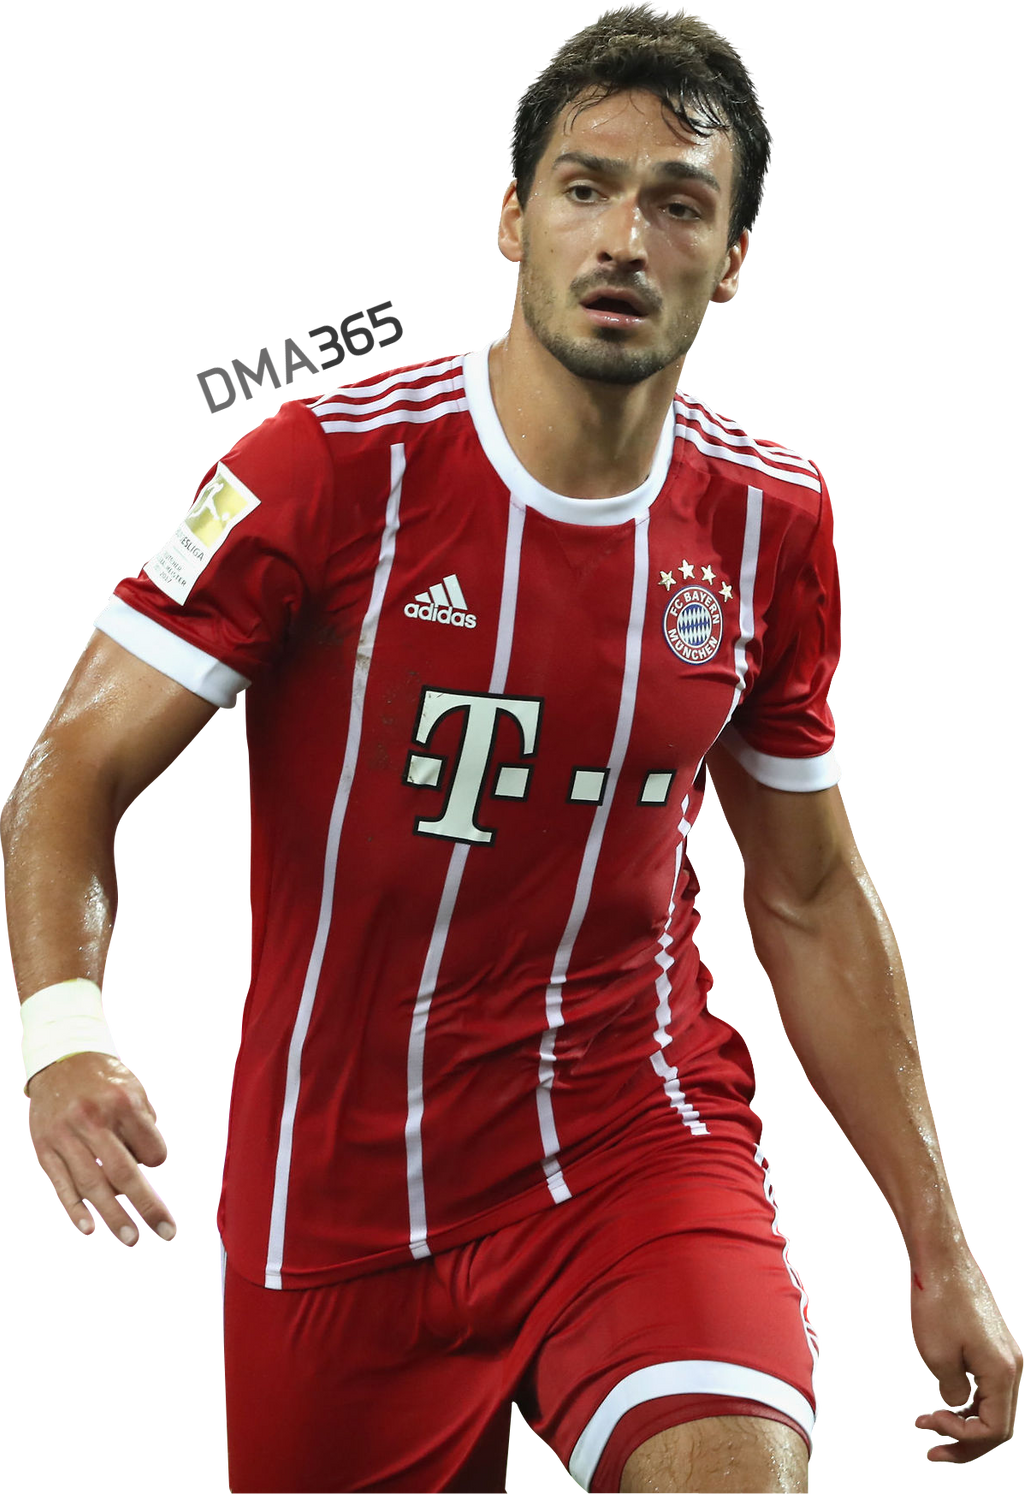 Mats Hummels by dma365 on DeviantArt